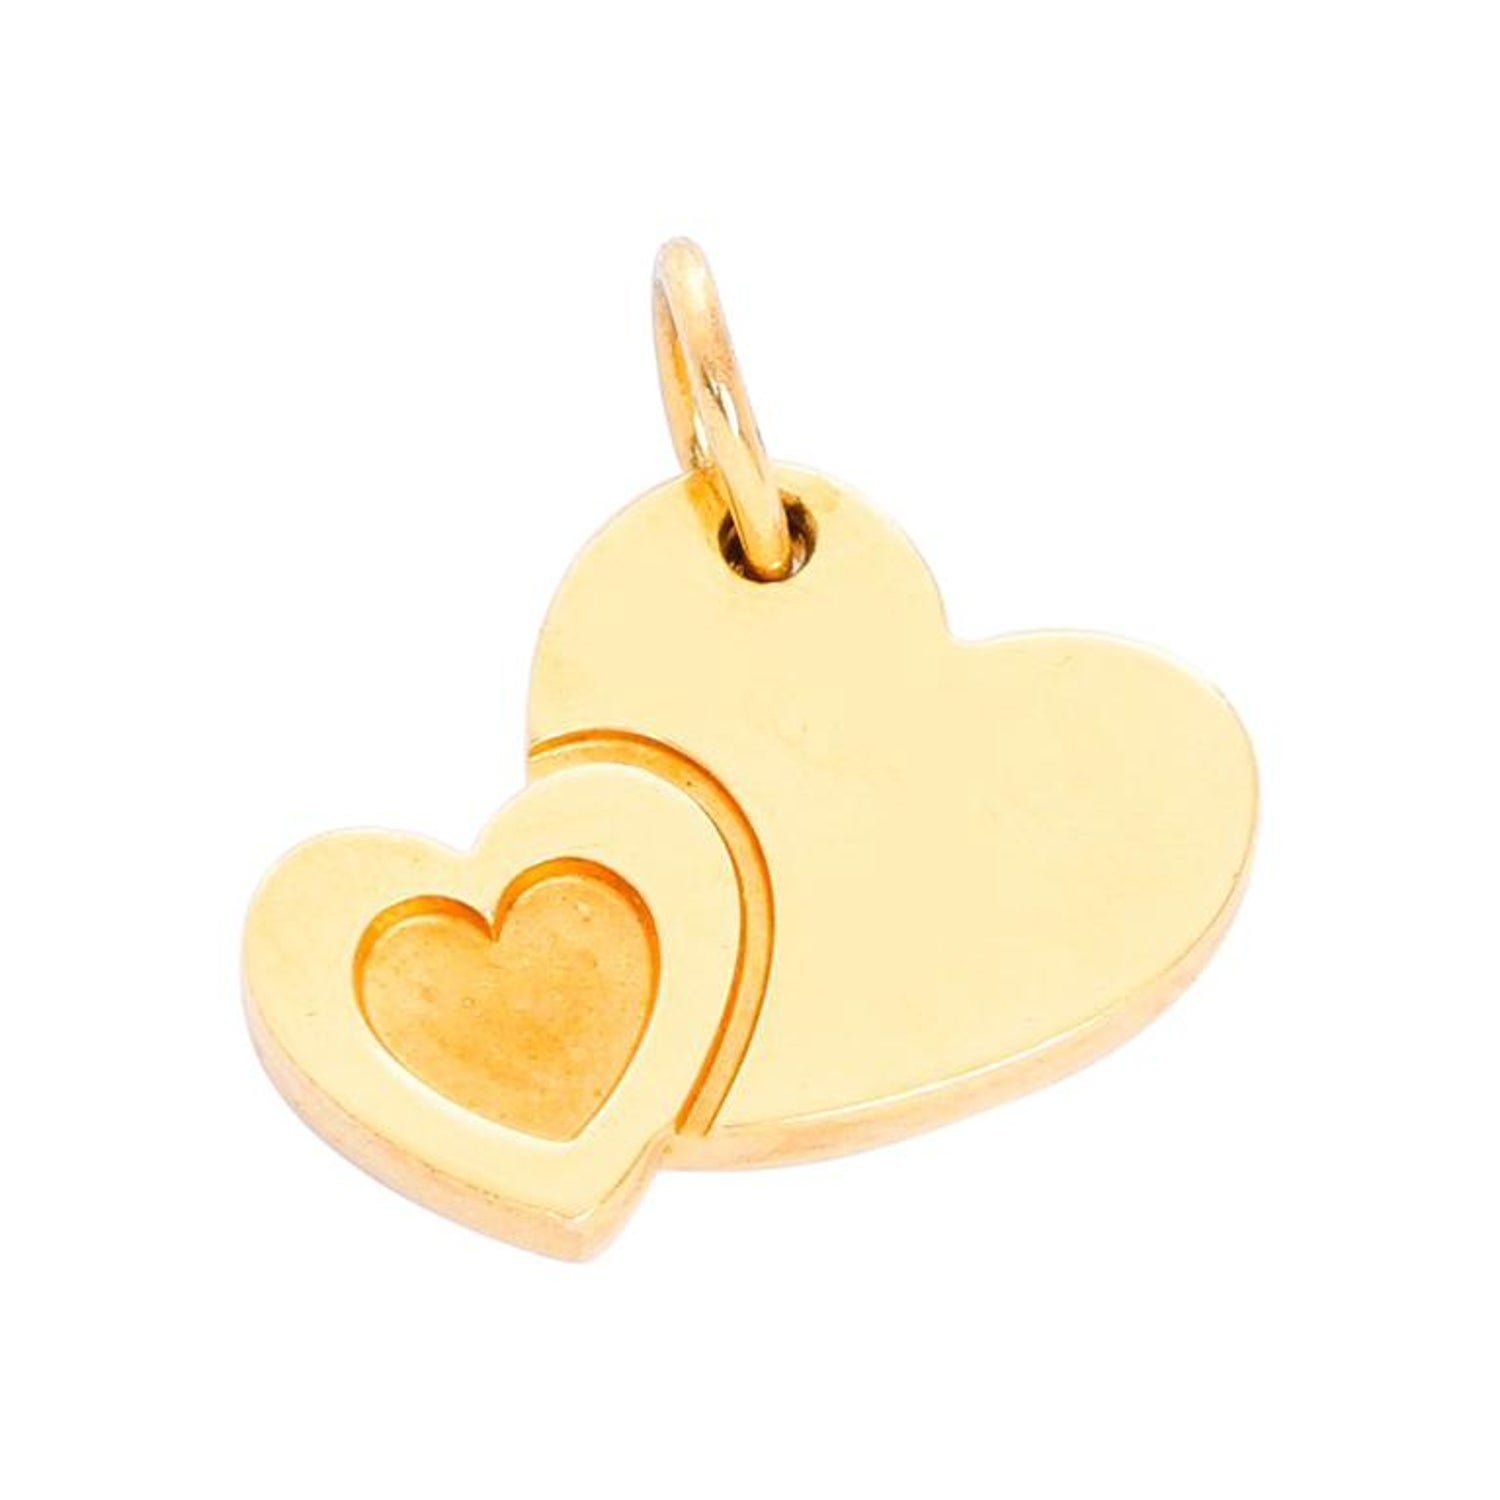 84a4f05a9 Tiffany and Co. Yellow Gold Heart Charm at 1stdibs